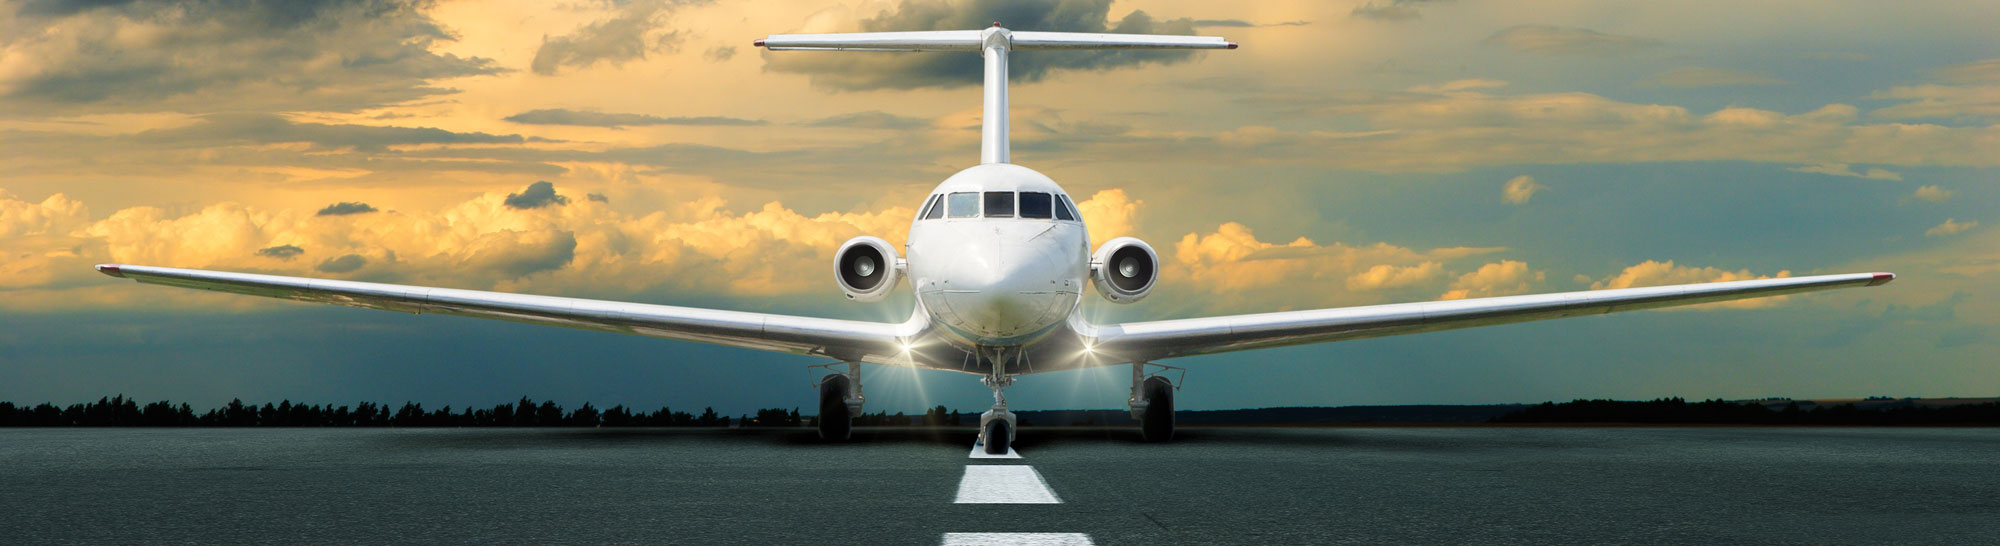 air freight forwarder air shipping services available